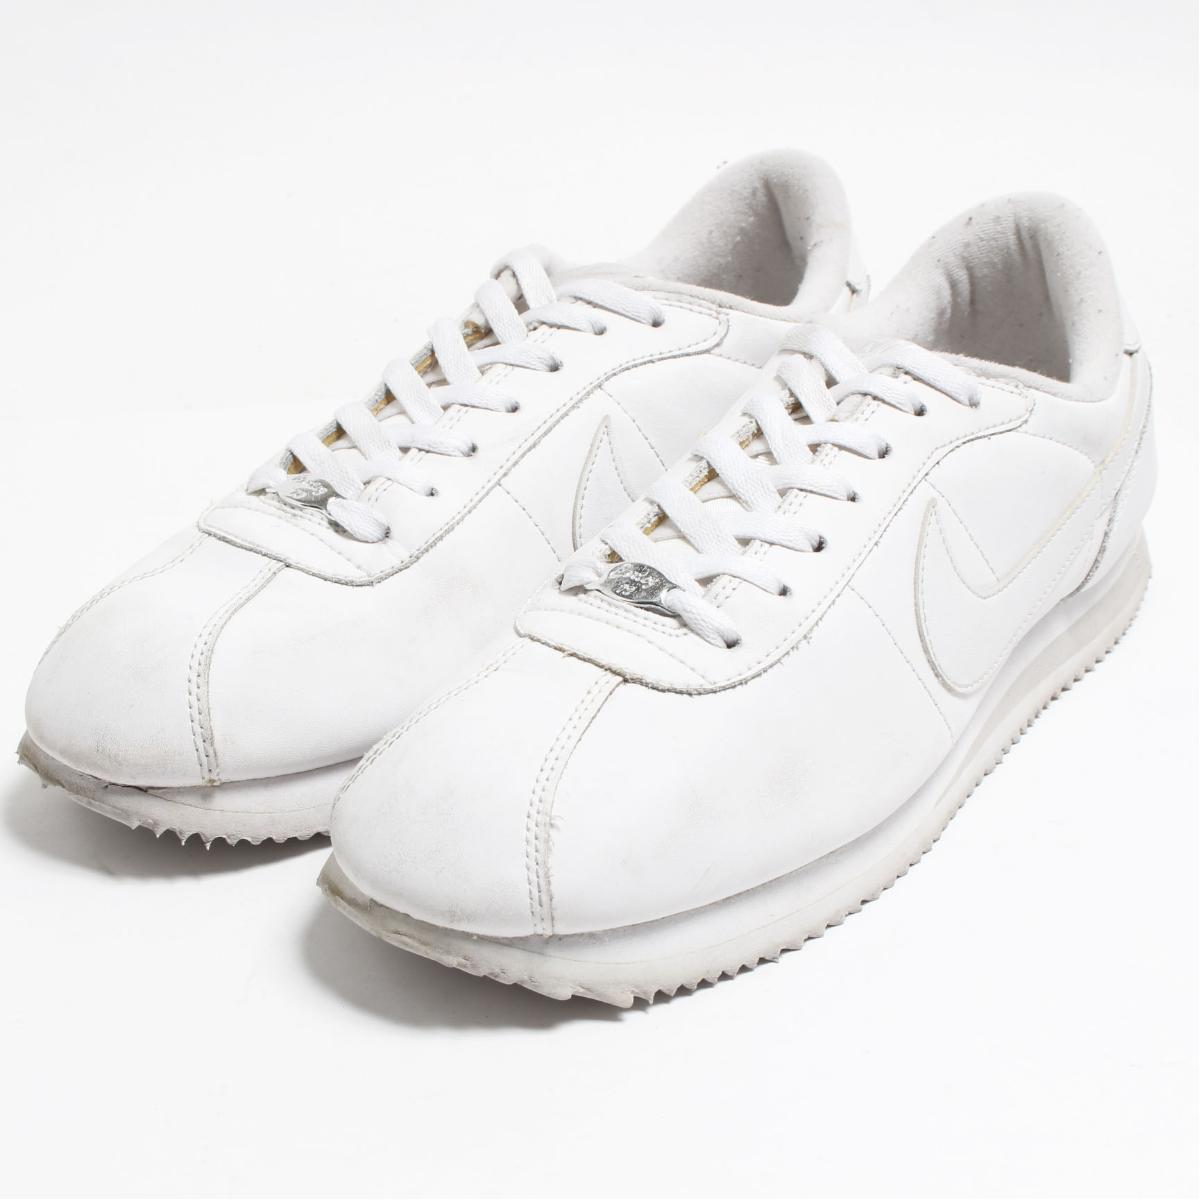 release info on exquisite design pick up Nike NIKE CORTEZ BASIC LEATHER 06 sneakers US11 men 29.0cm /bon8454